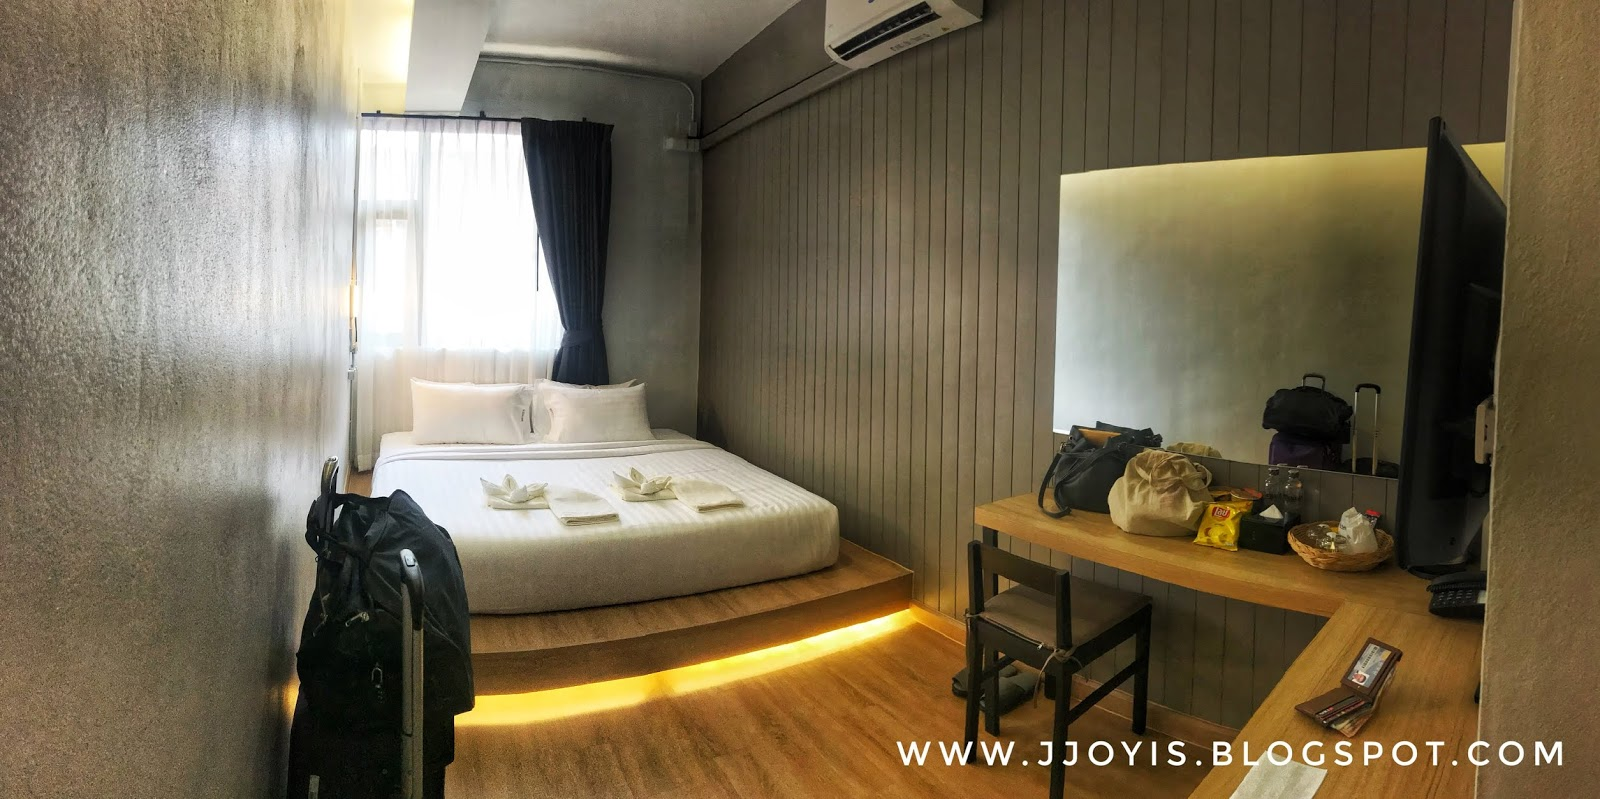 Marwin villa bok hotel review superior double room bed